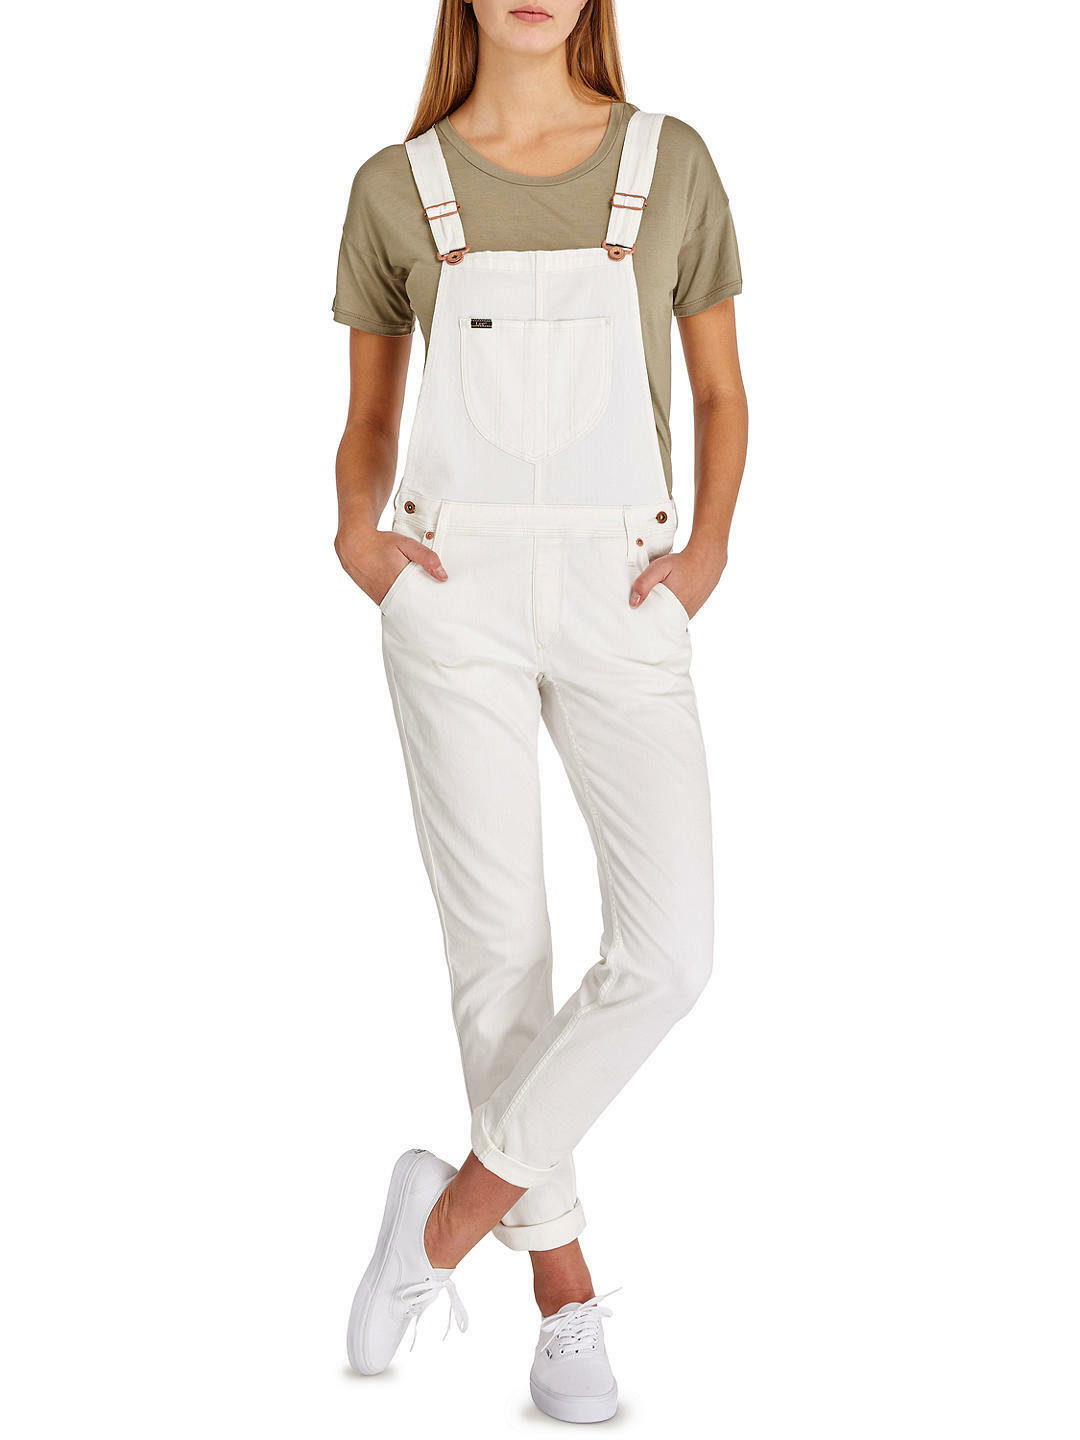 LEE - BNWT - Bib Logger Dungarees Jeans - Off Weiß - Medium